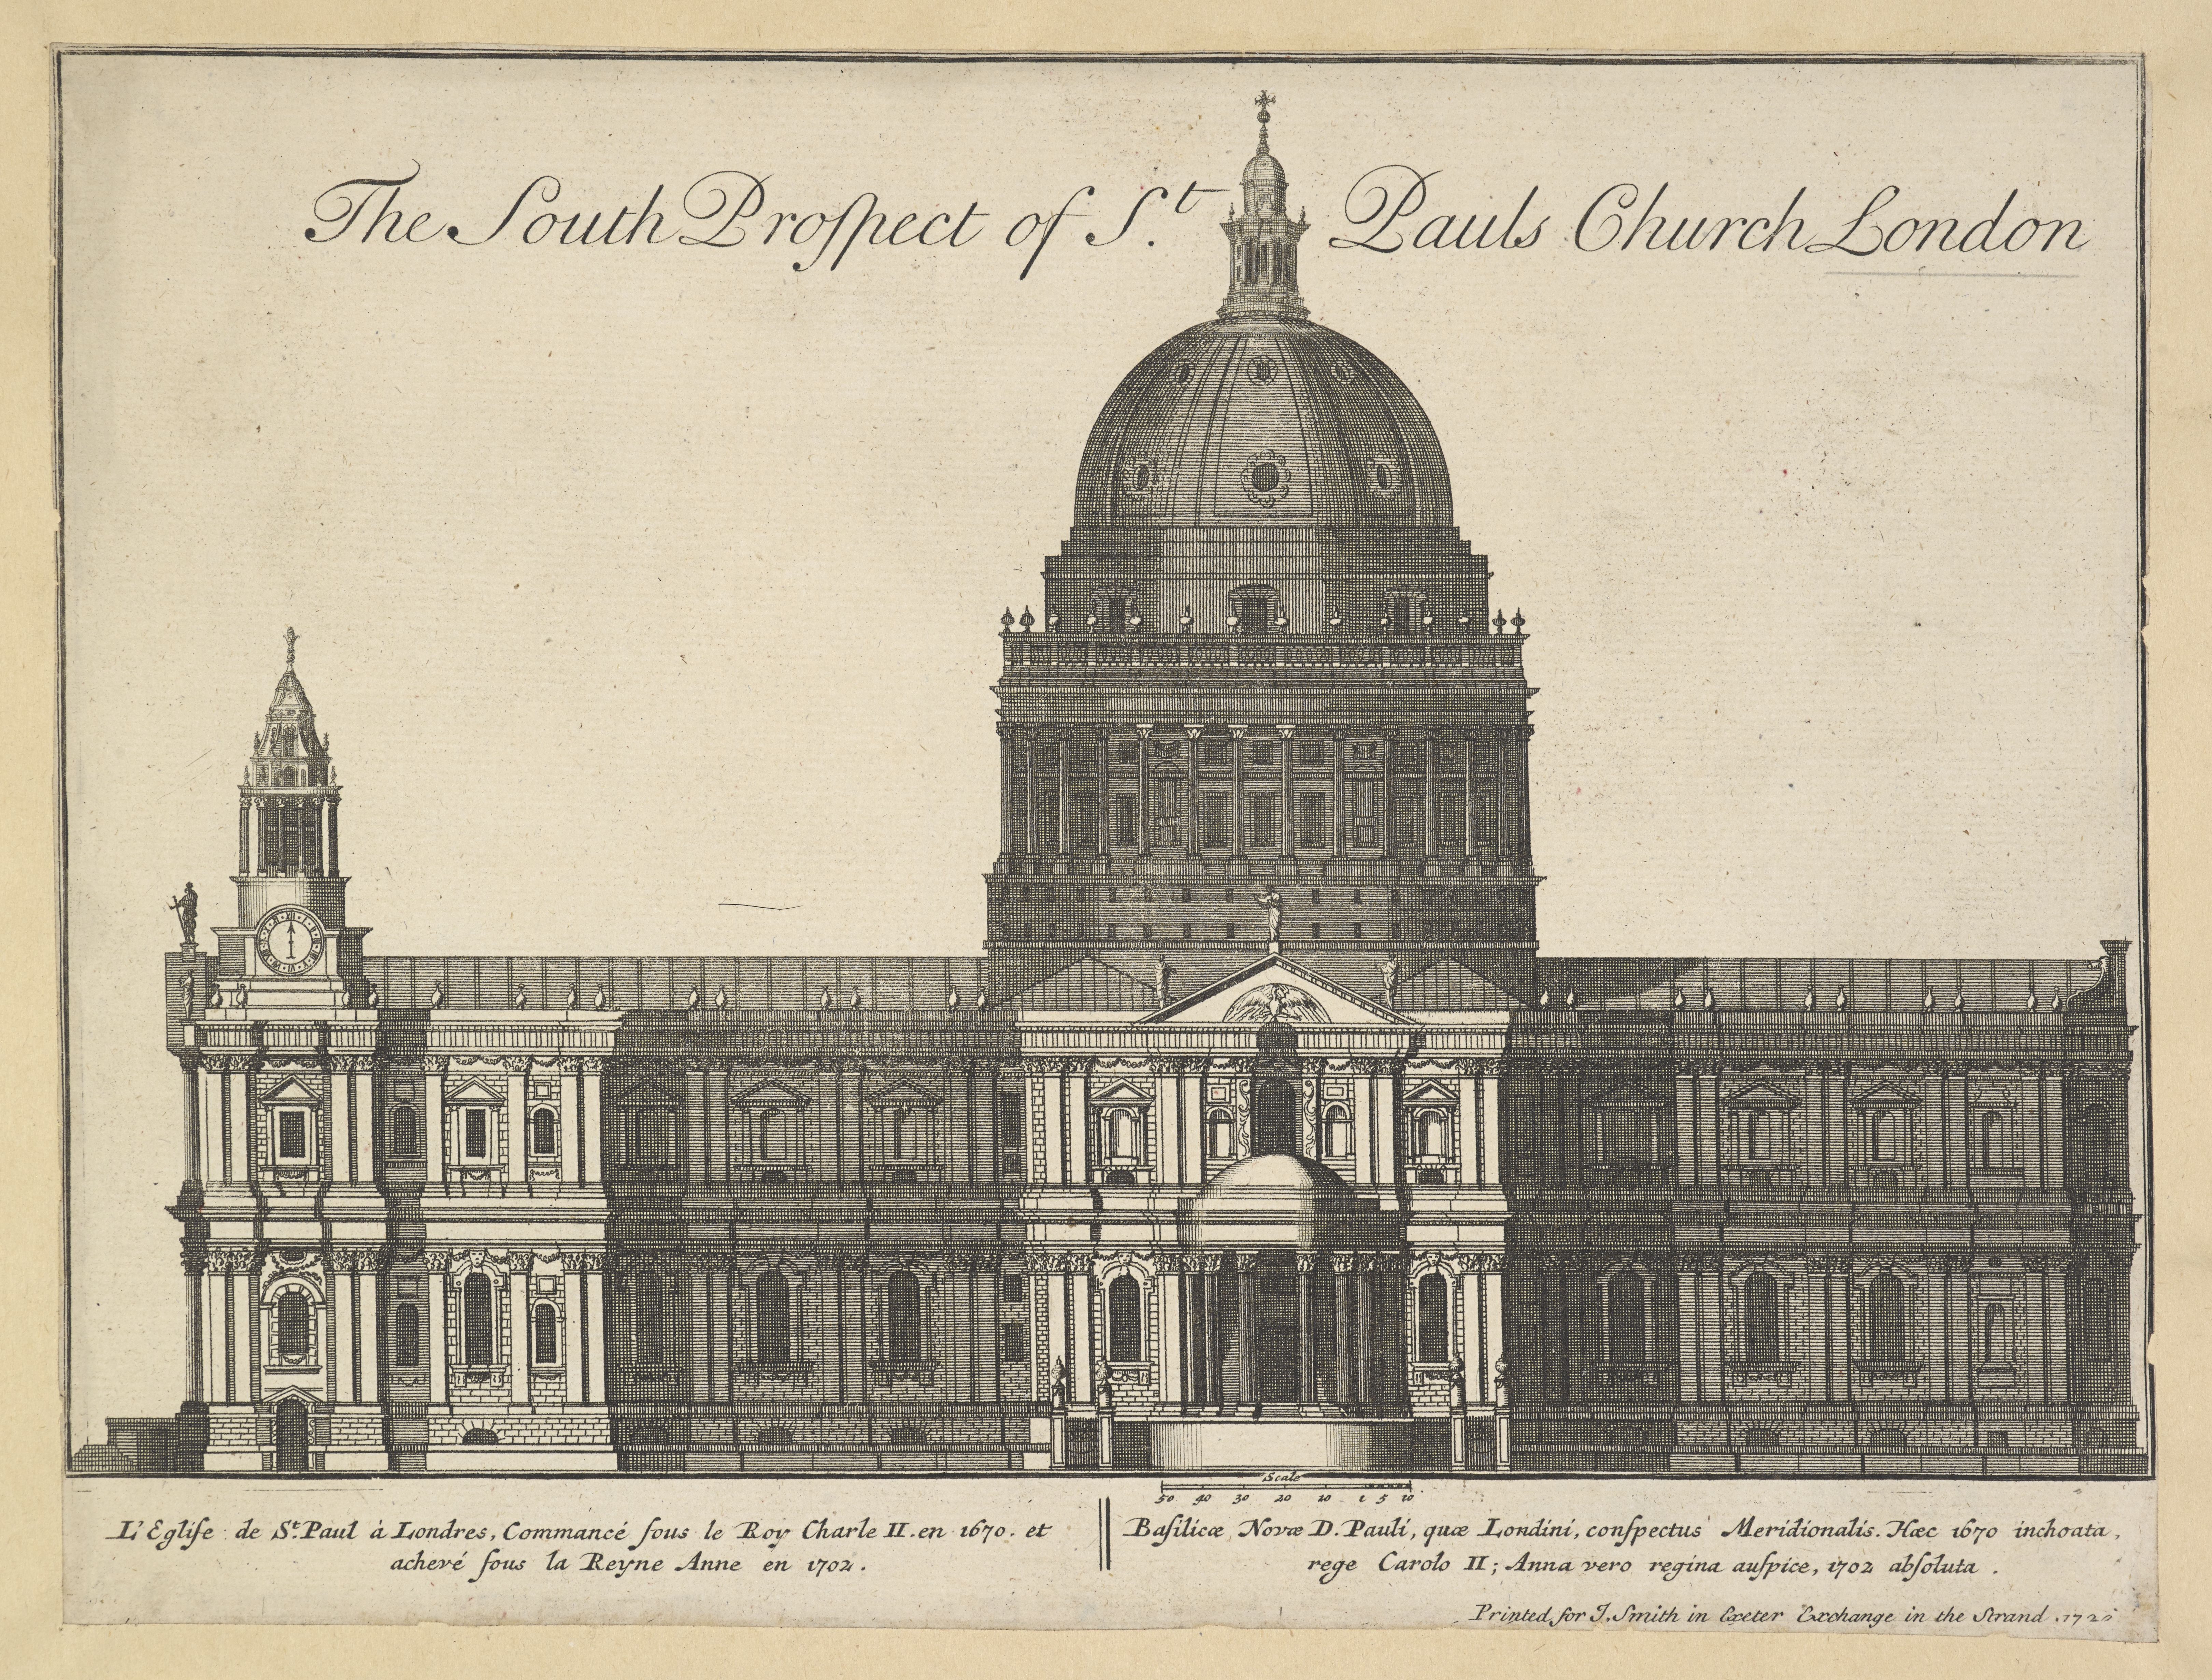 The South Prospect of St. Paul's Church London, 1720, RECTO